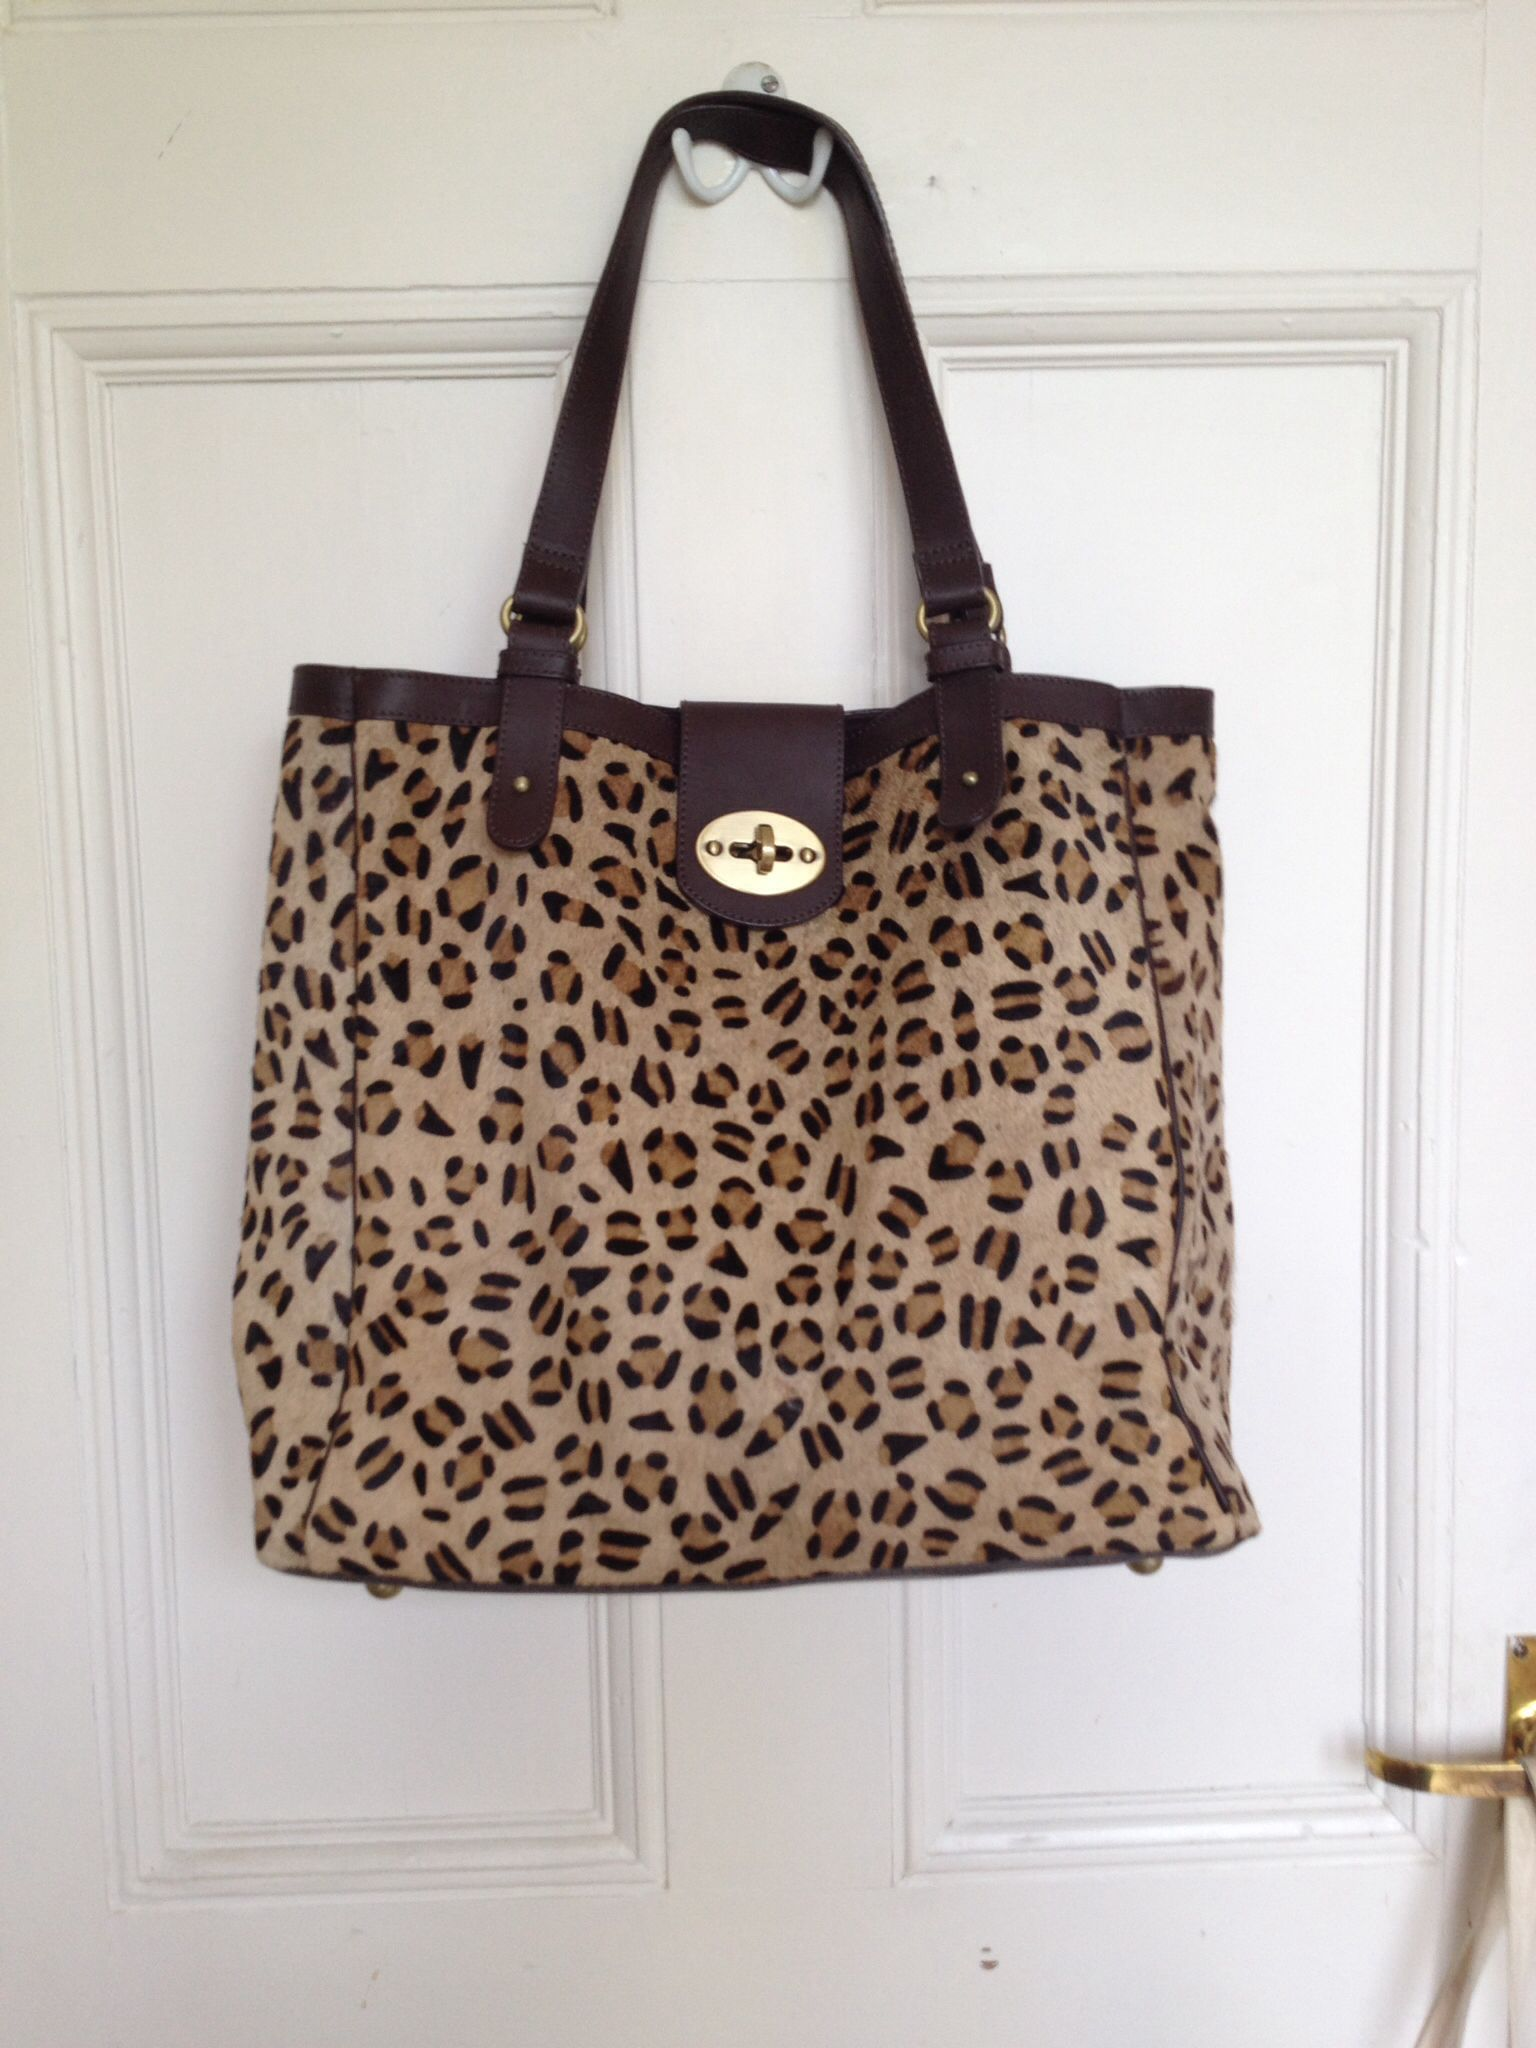 Today's bag from Boden